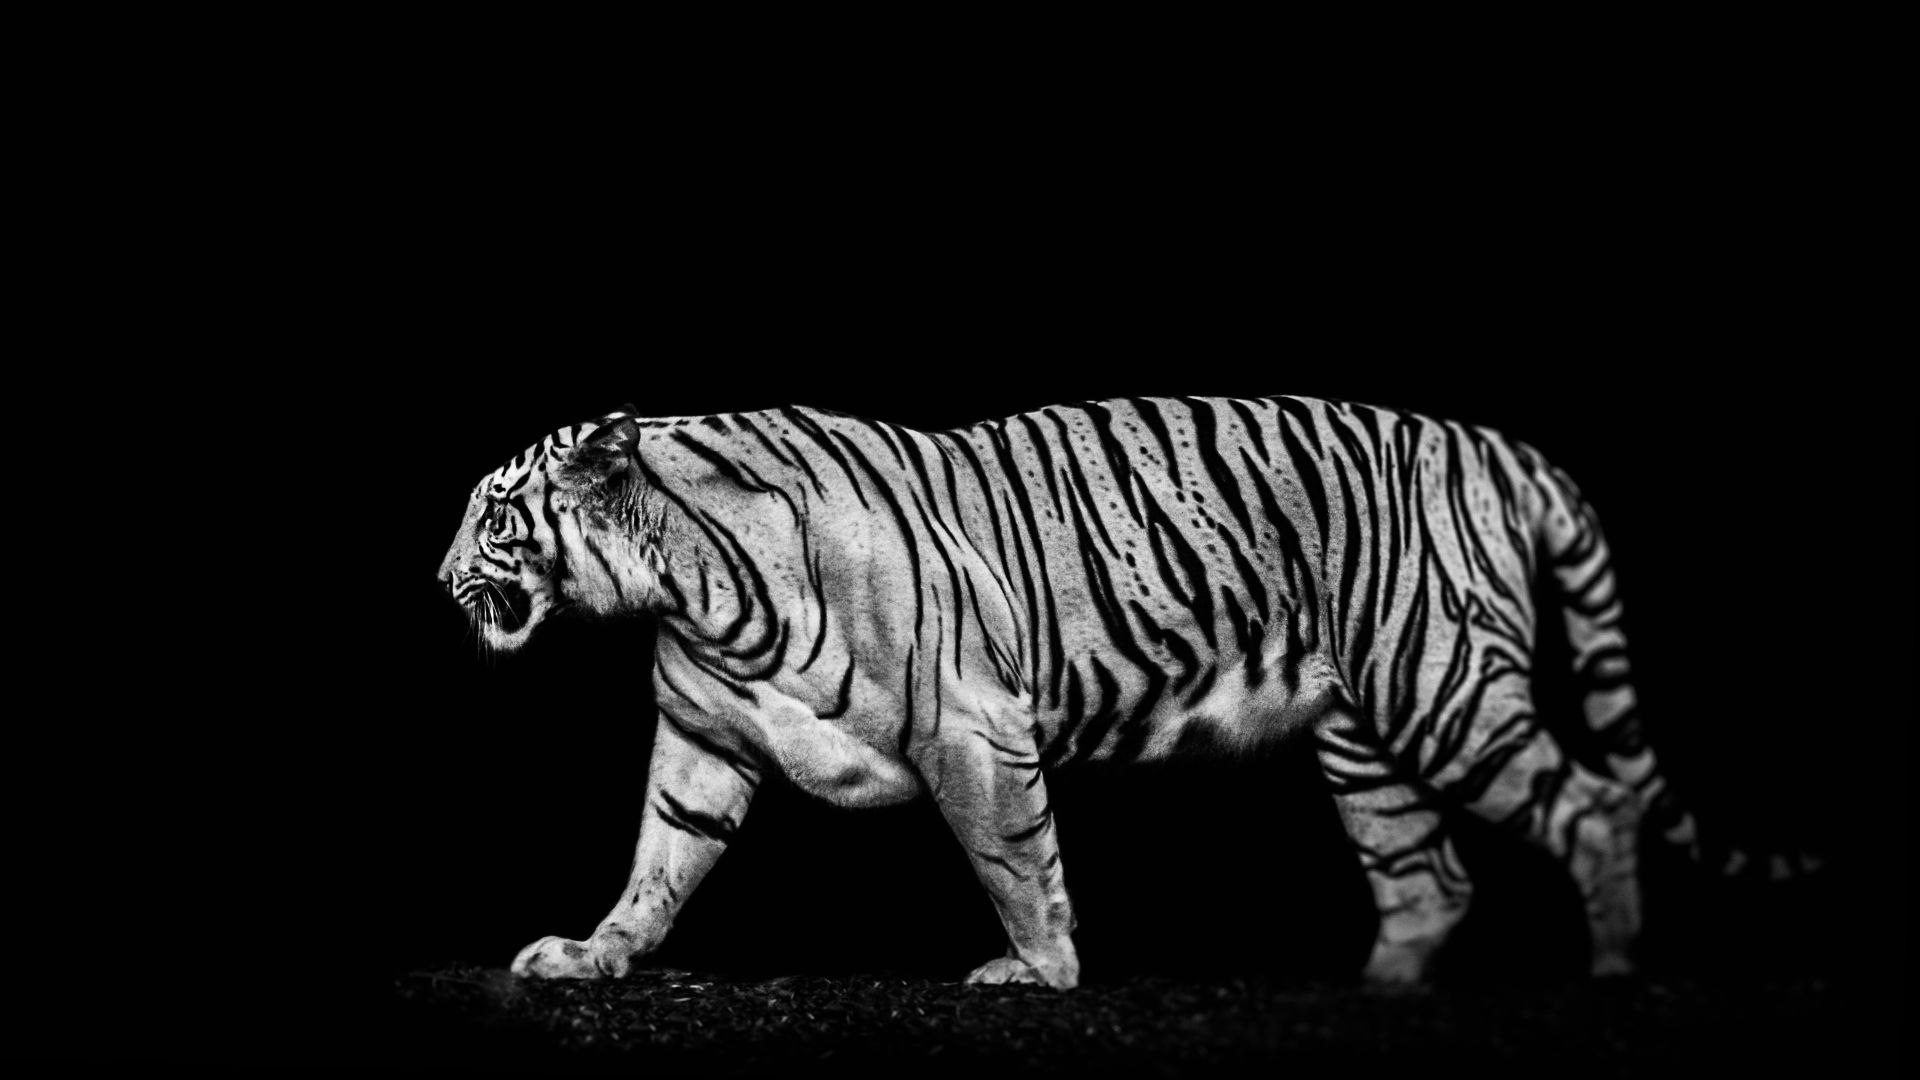 White Tiger Tiger is coming, full tiger in frame, Download Wallpaper